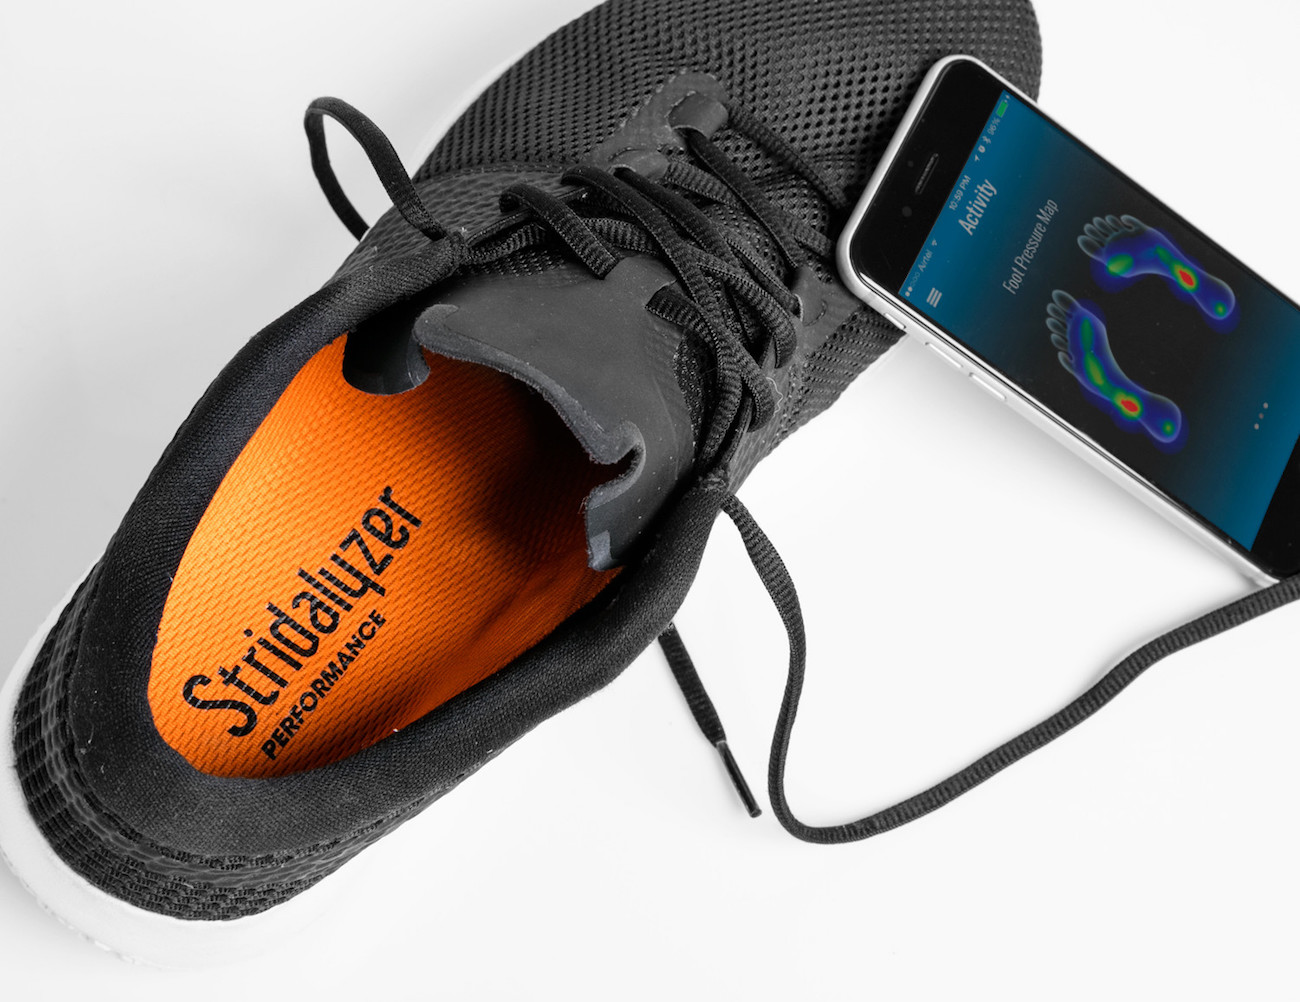 Stridalyzer Performance Smart Insoles